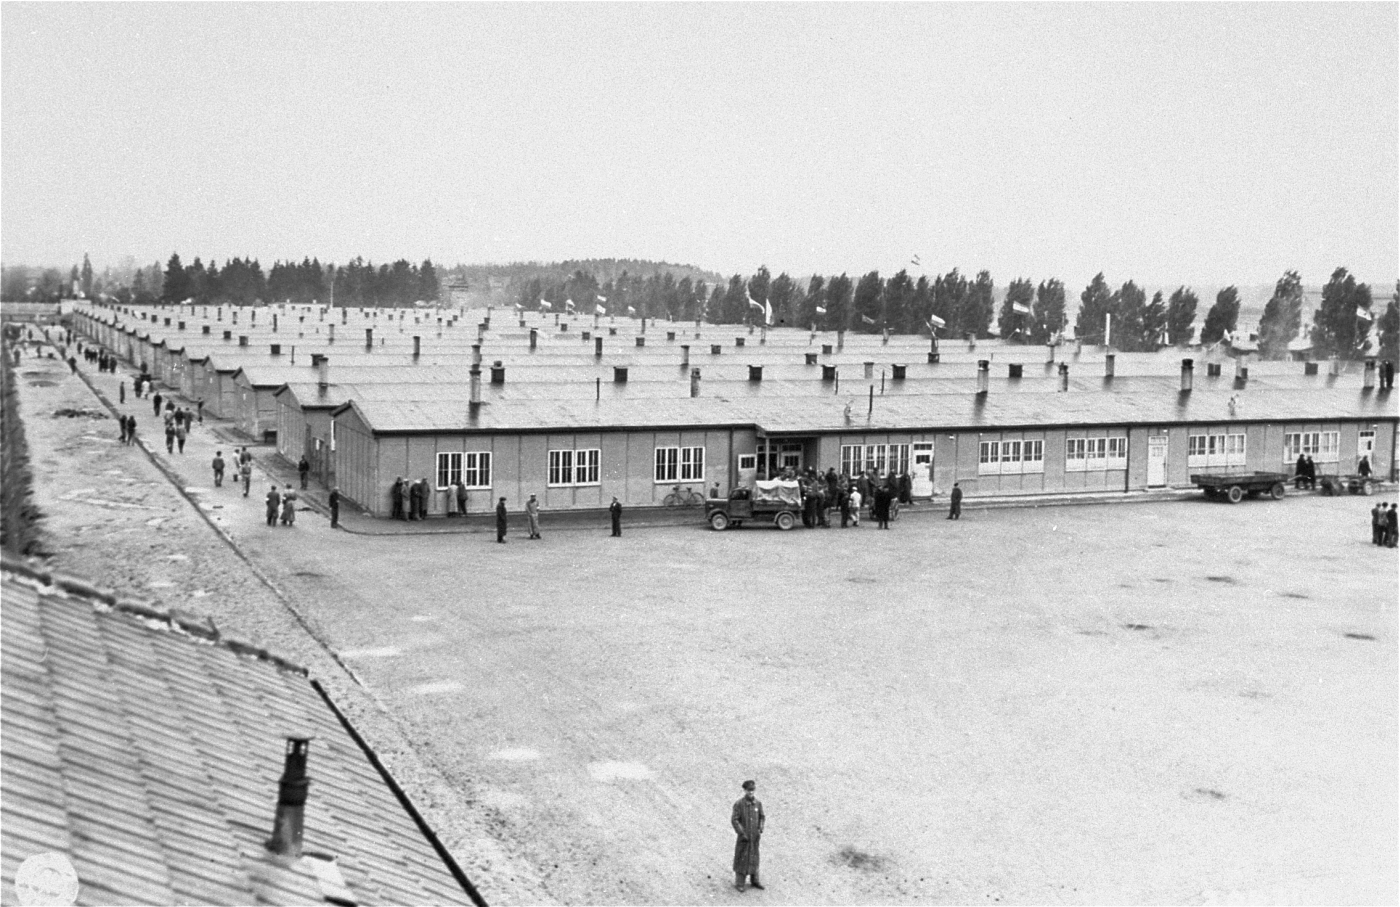 Prisoner's_barracks_dachau.jpg